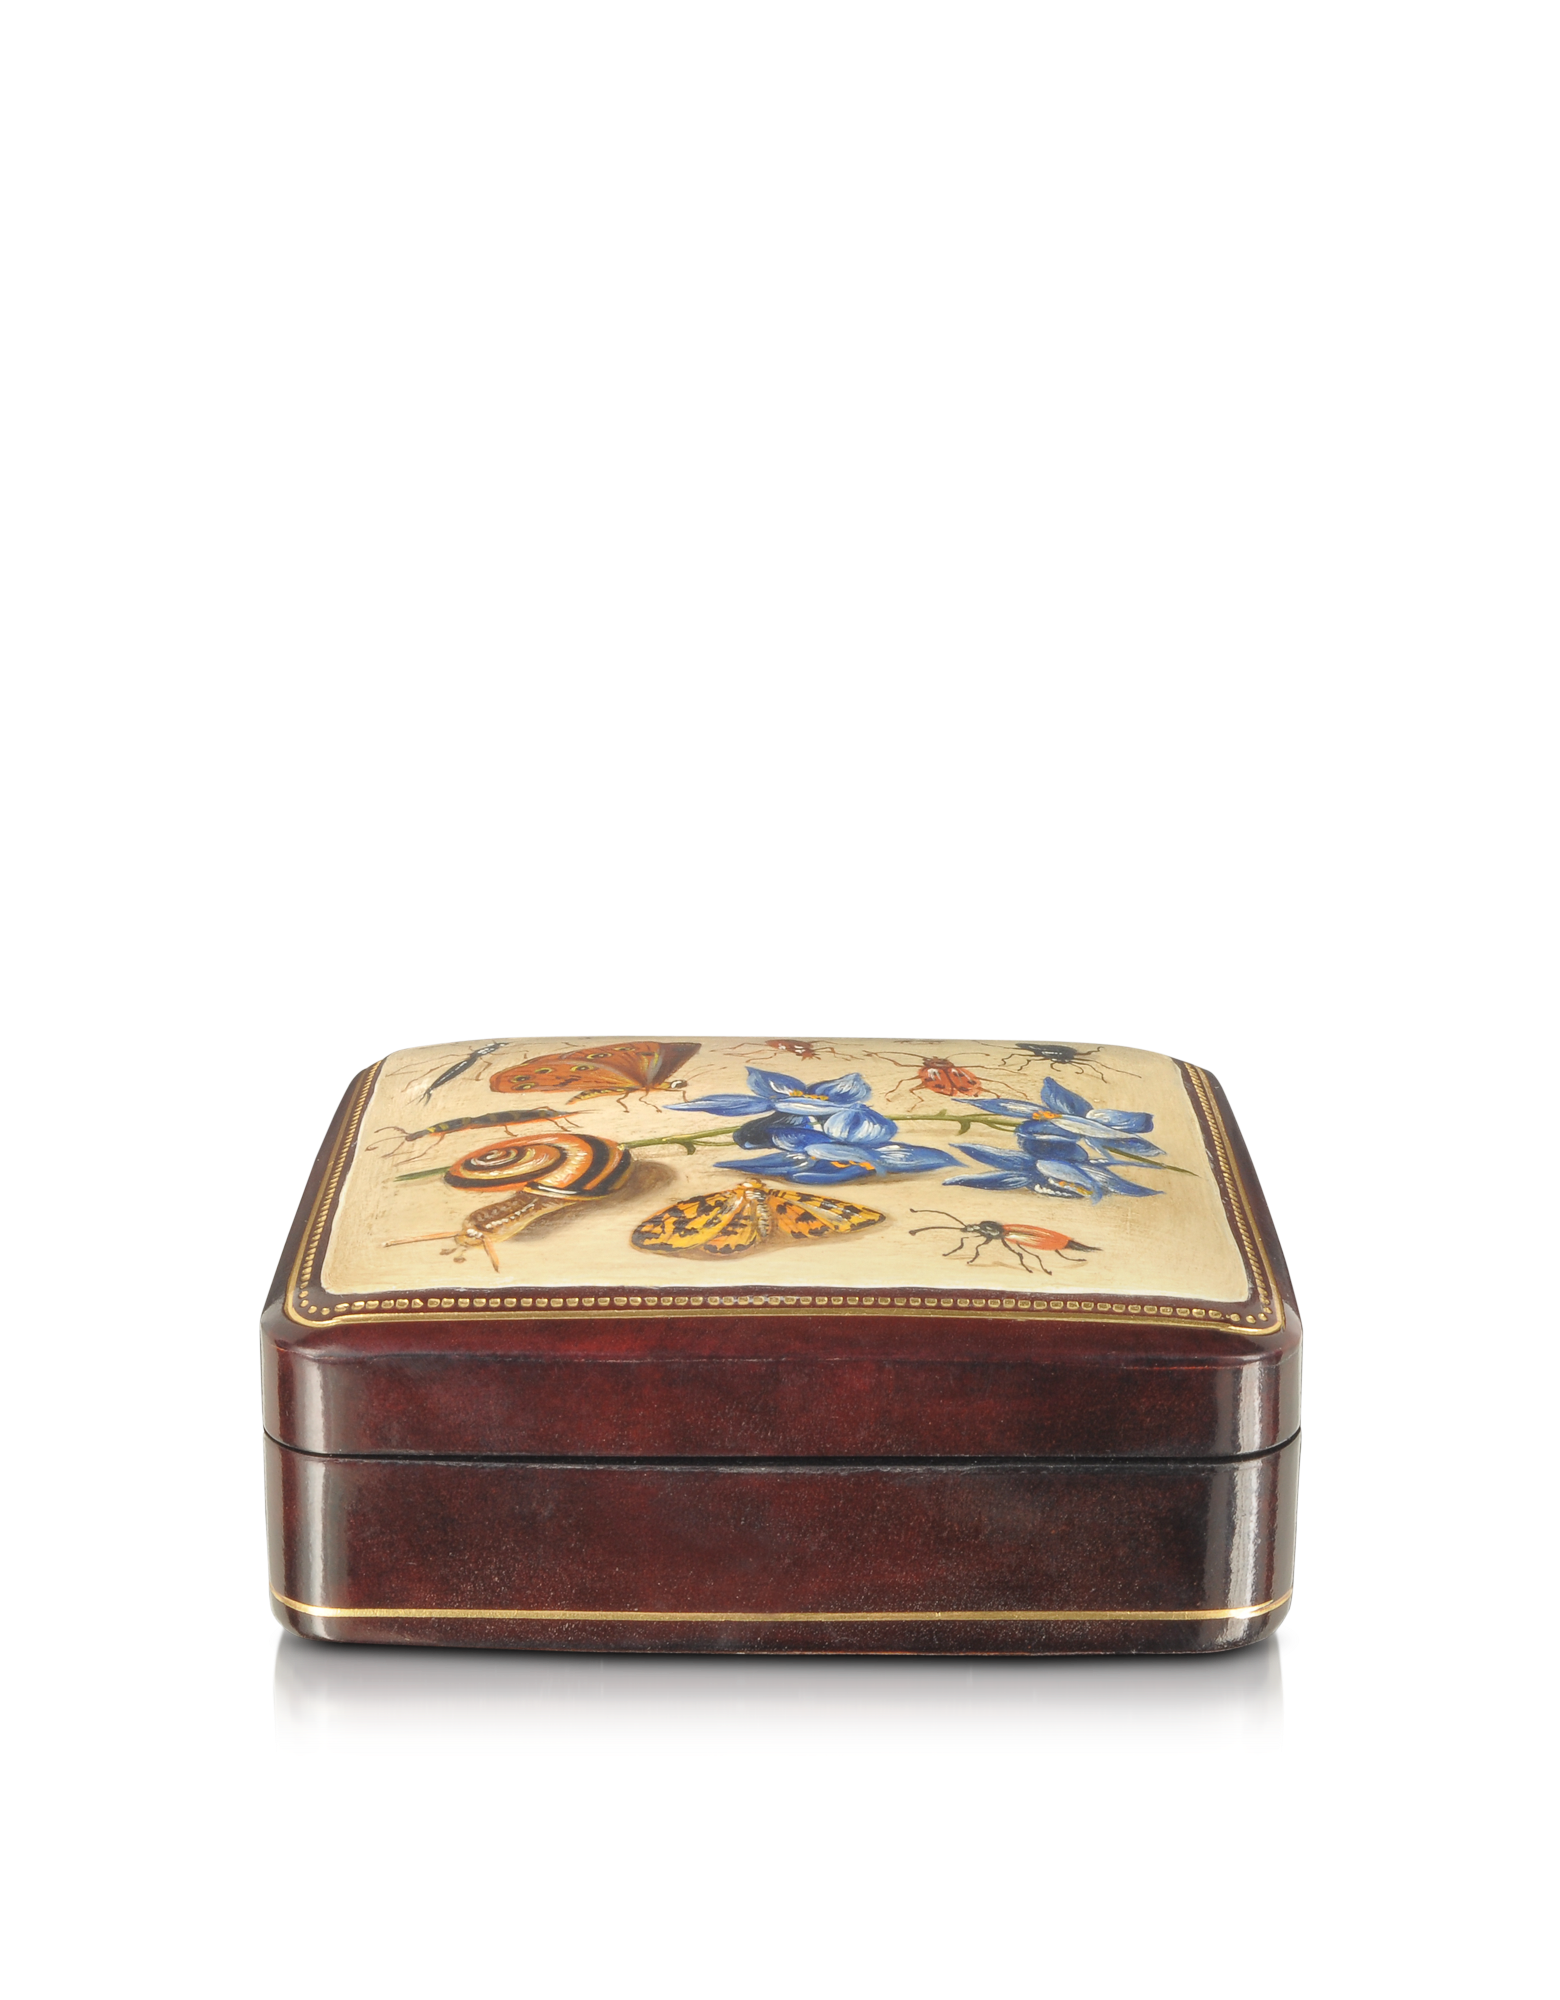 Image of Oil on Leather Mini Jewelry Box w/Light Blue Flower